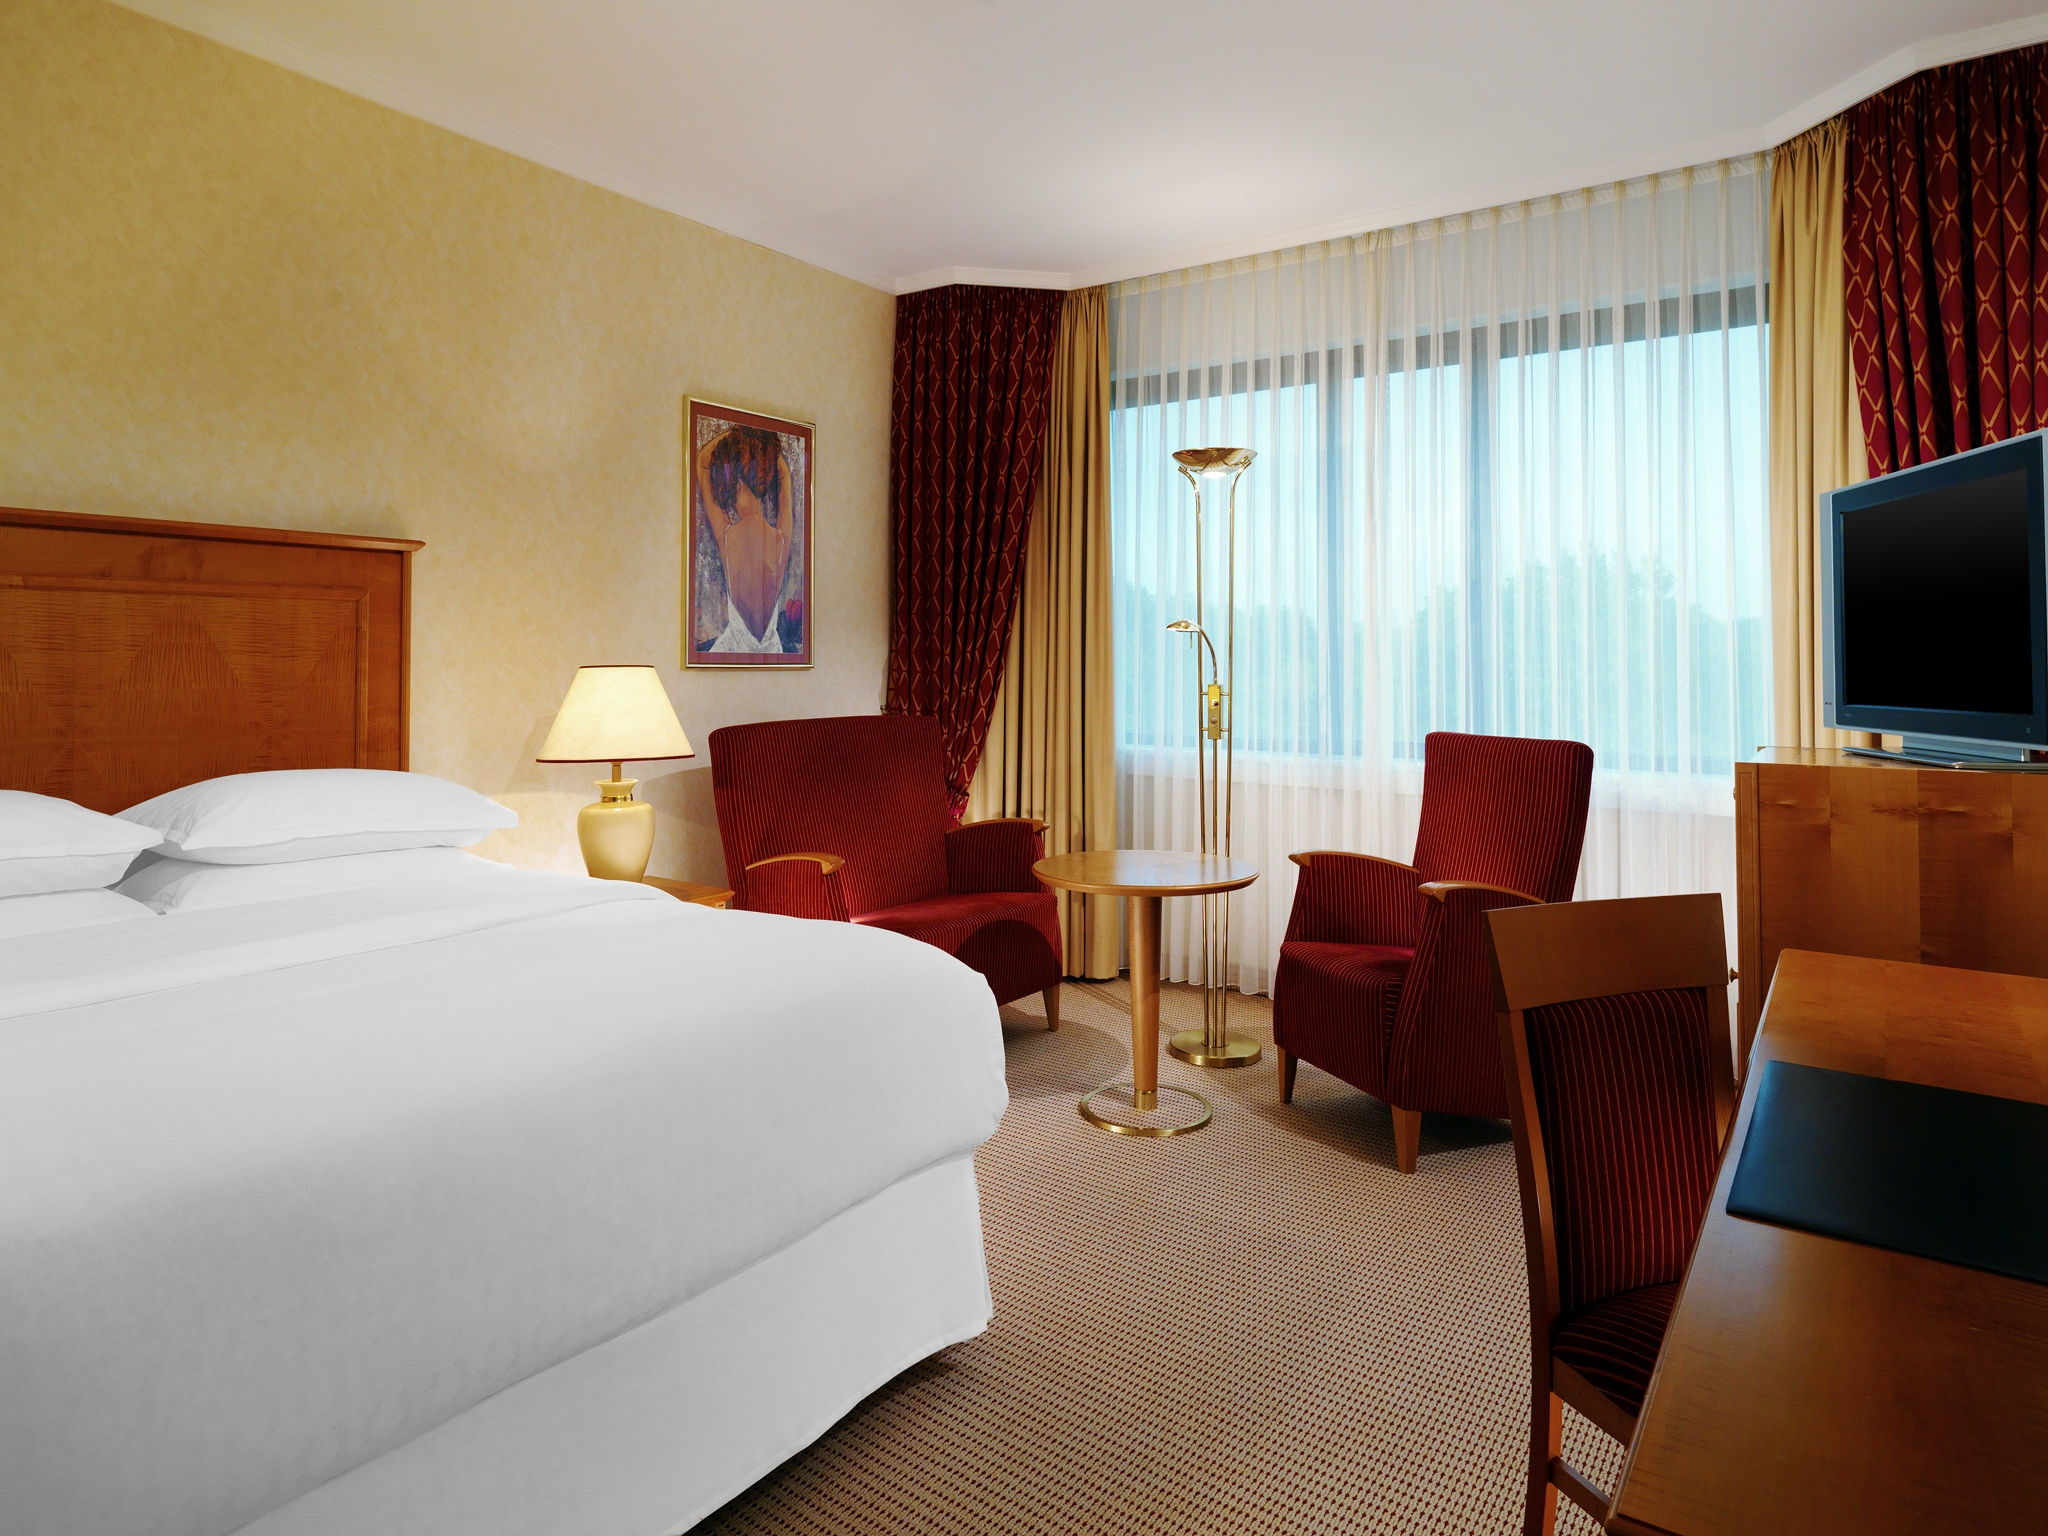 Hotel Essen Germany: Room City View